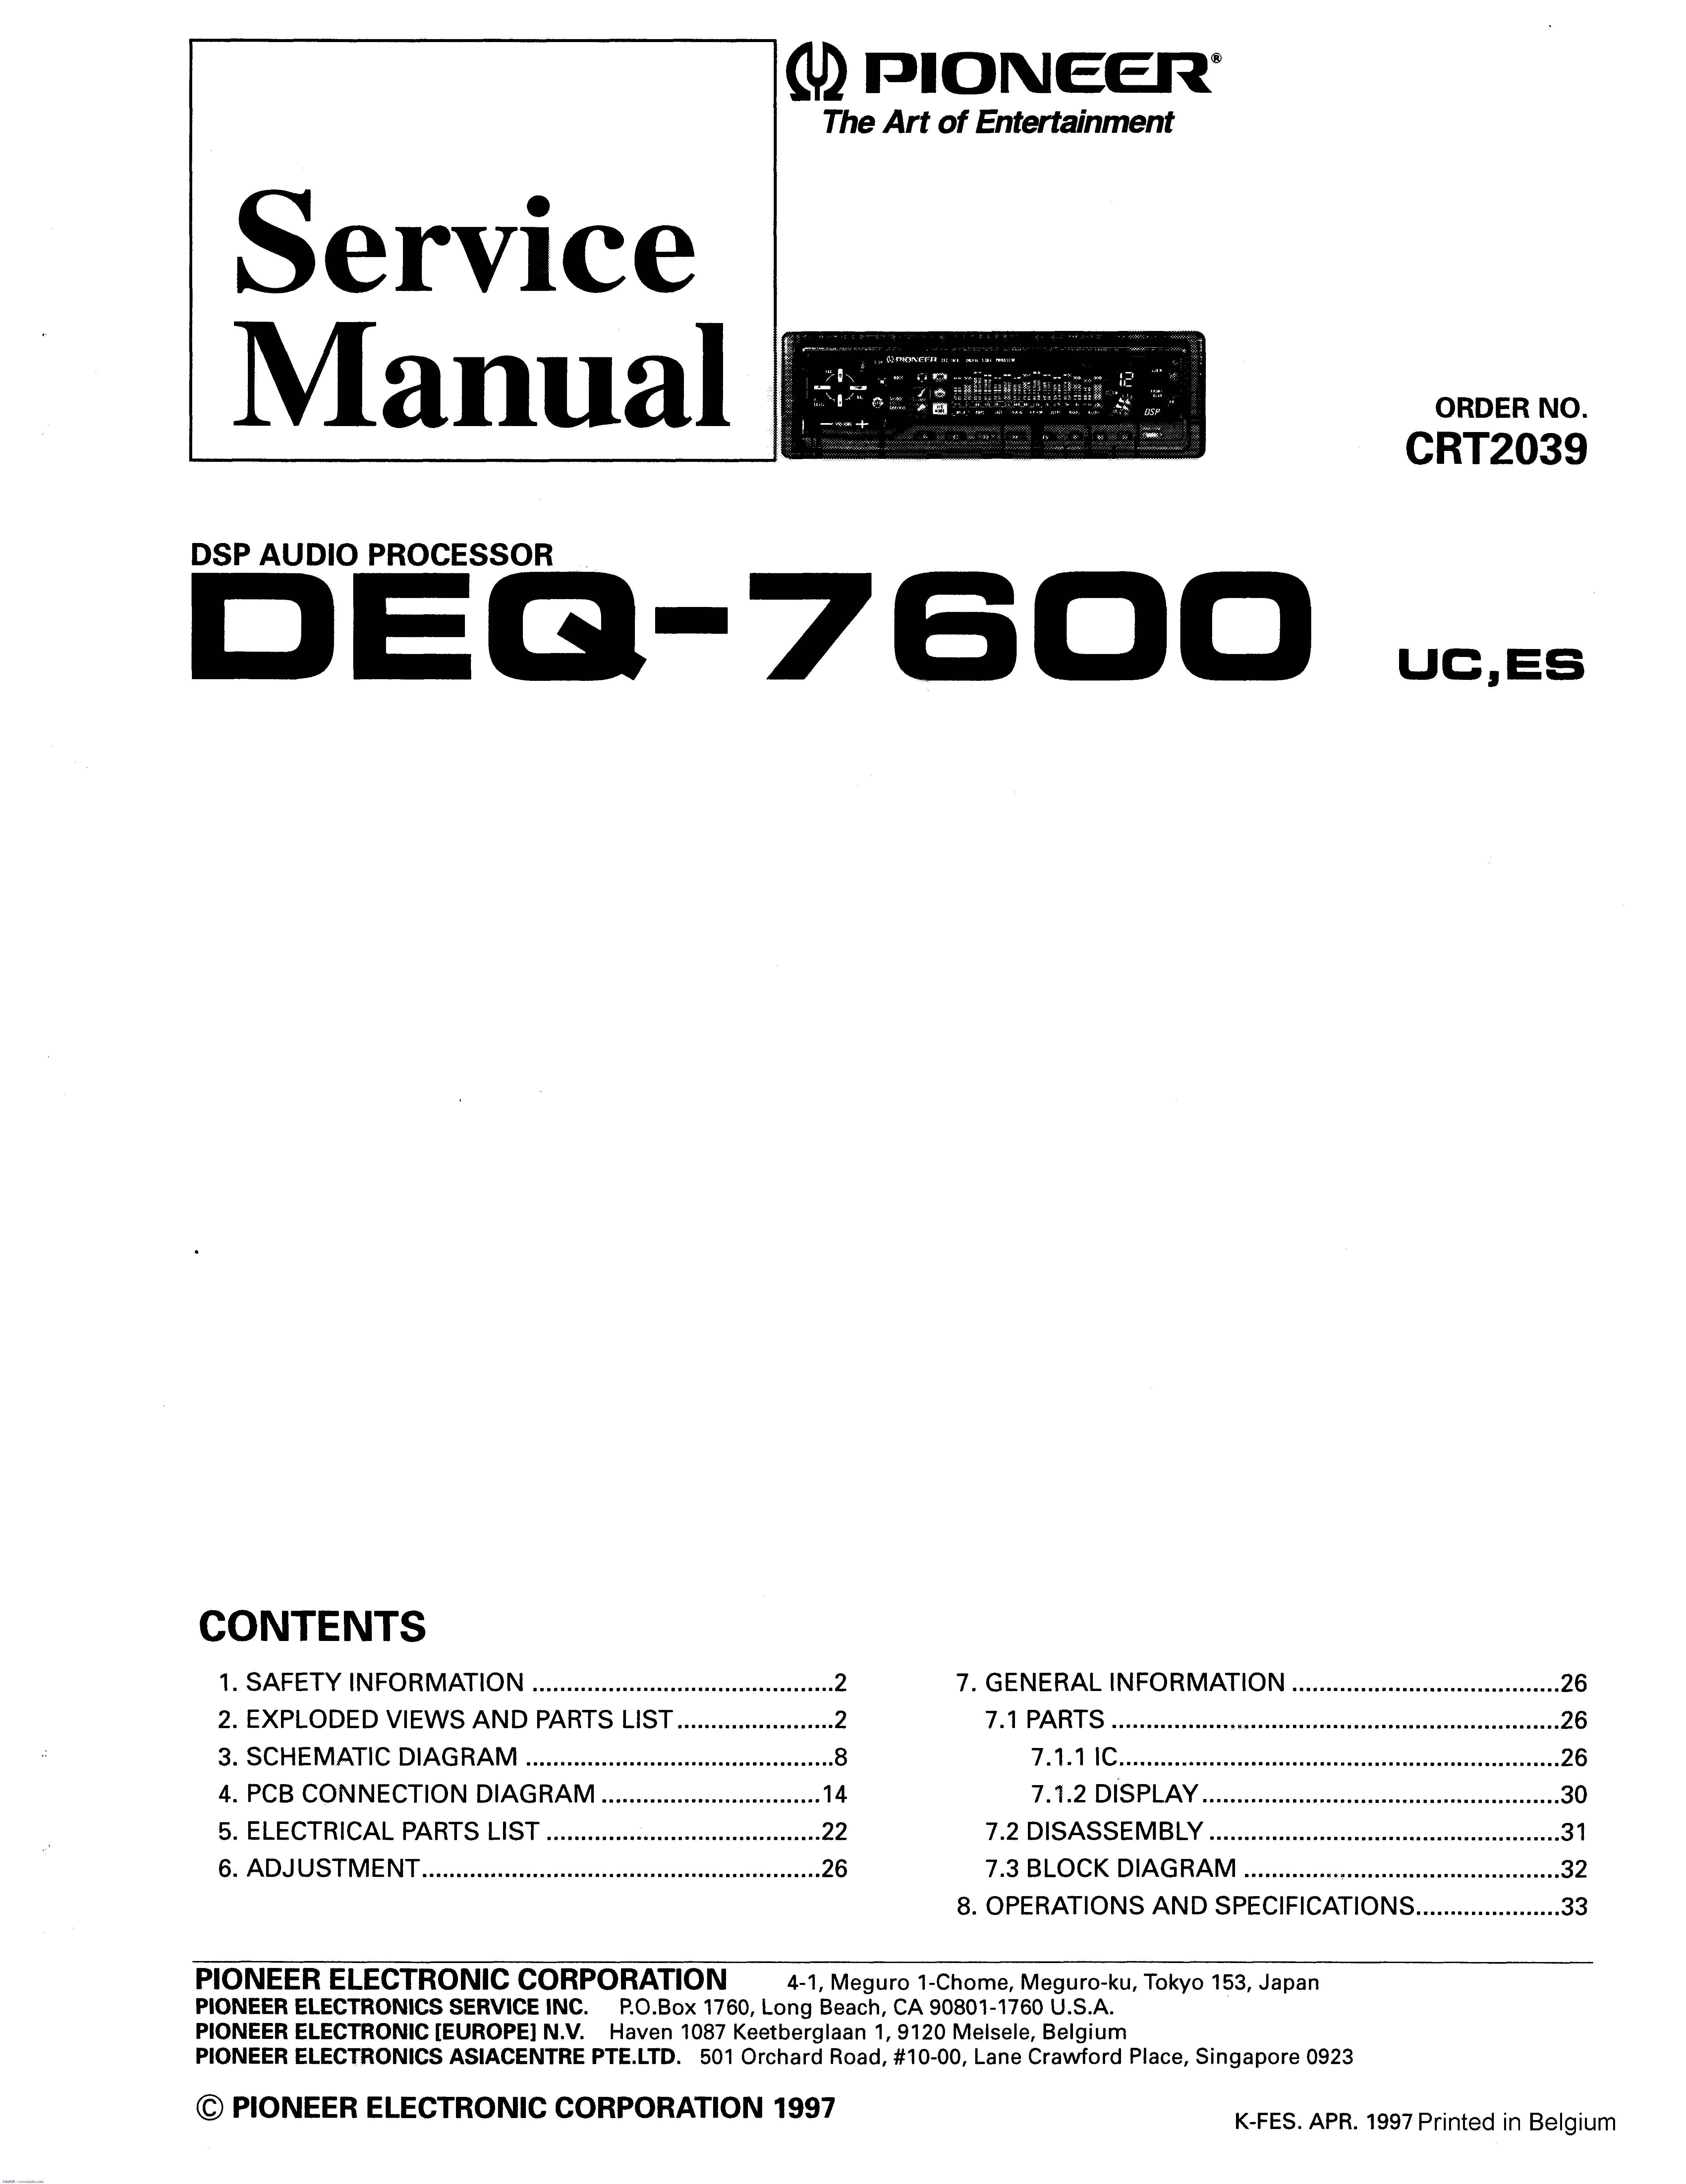 Pioneer Eq 6500 Wiring Diagram from im3.diagramasde.com